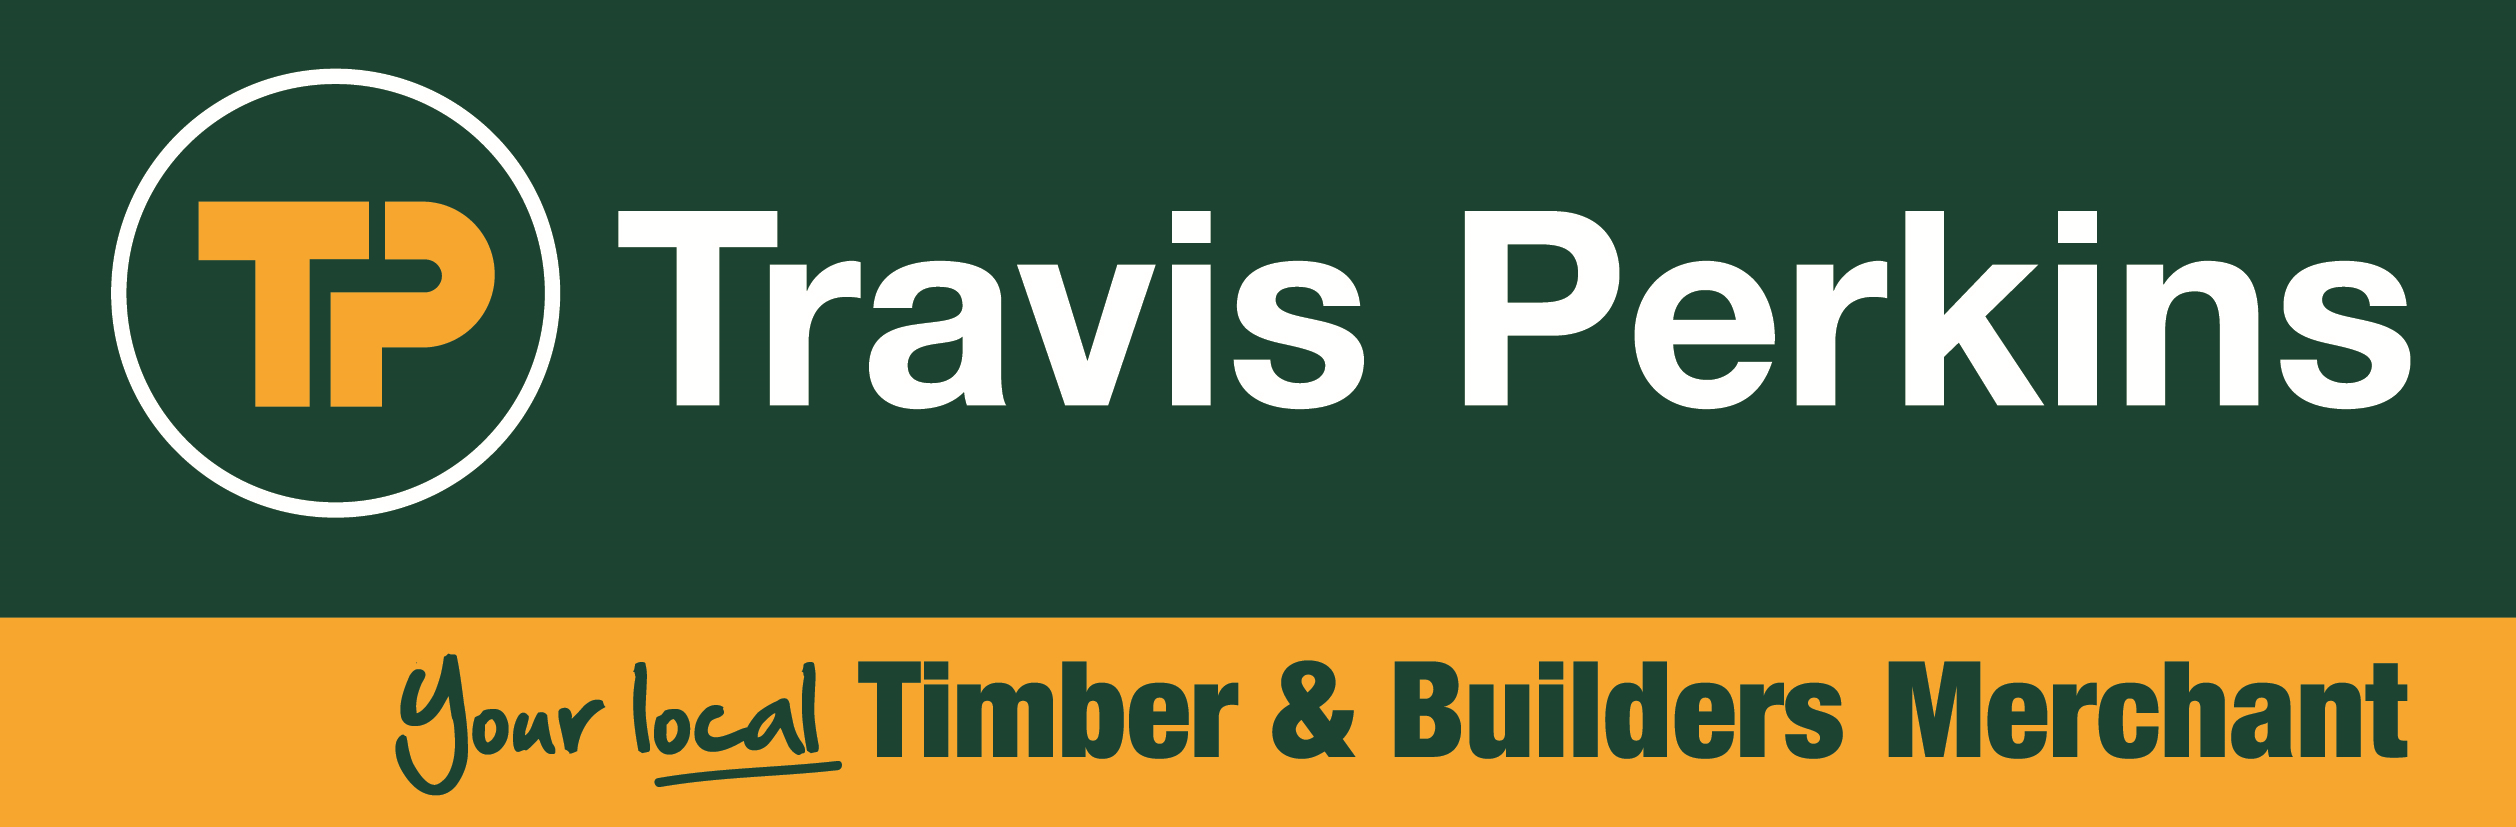 Travis Perkins Logo  sc 1 st  Trustpilot & Travis Perkins Reviews | Read Customer Service Reviews of www ...